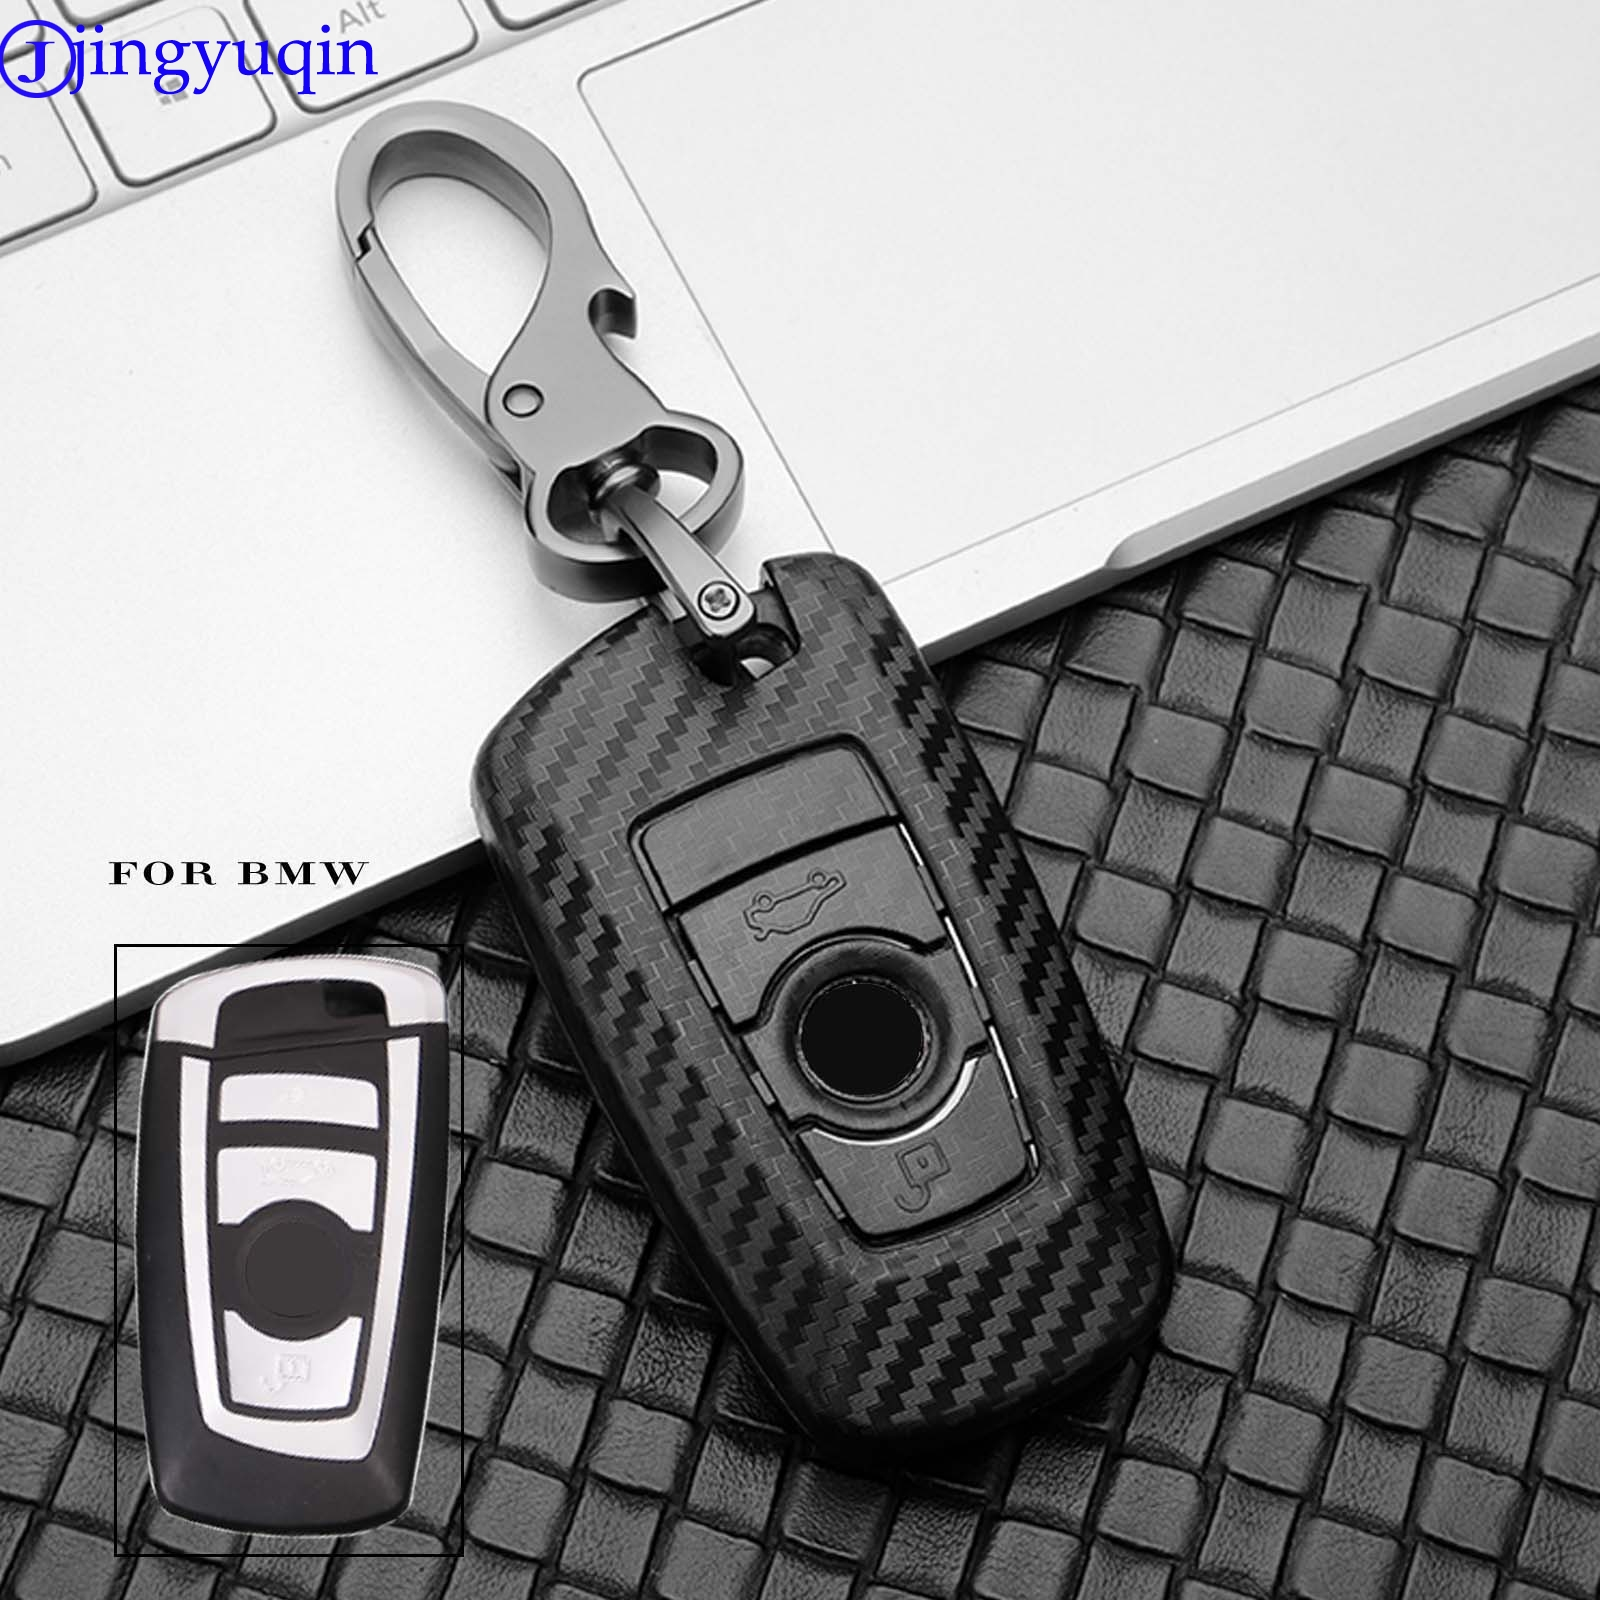 Jingyuqin Car Key Case For BMW 520 525 F30 F10 F18 118i 320i 1 3 5 7 Series X3 X4 M3 M4 M5 Car Styling Protection Key Shell